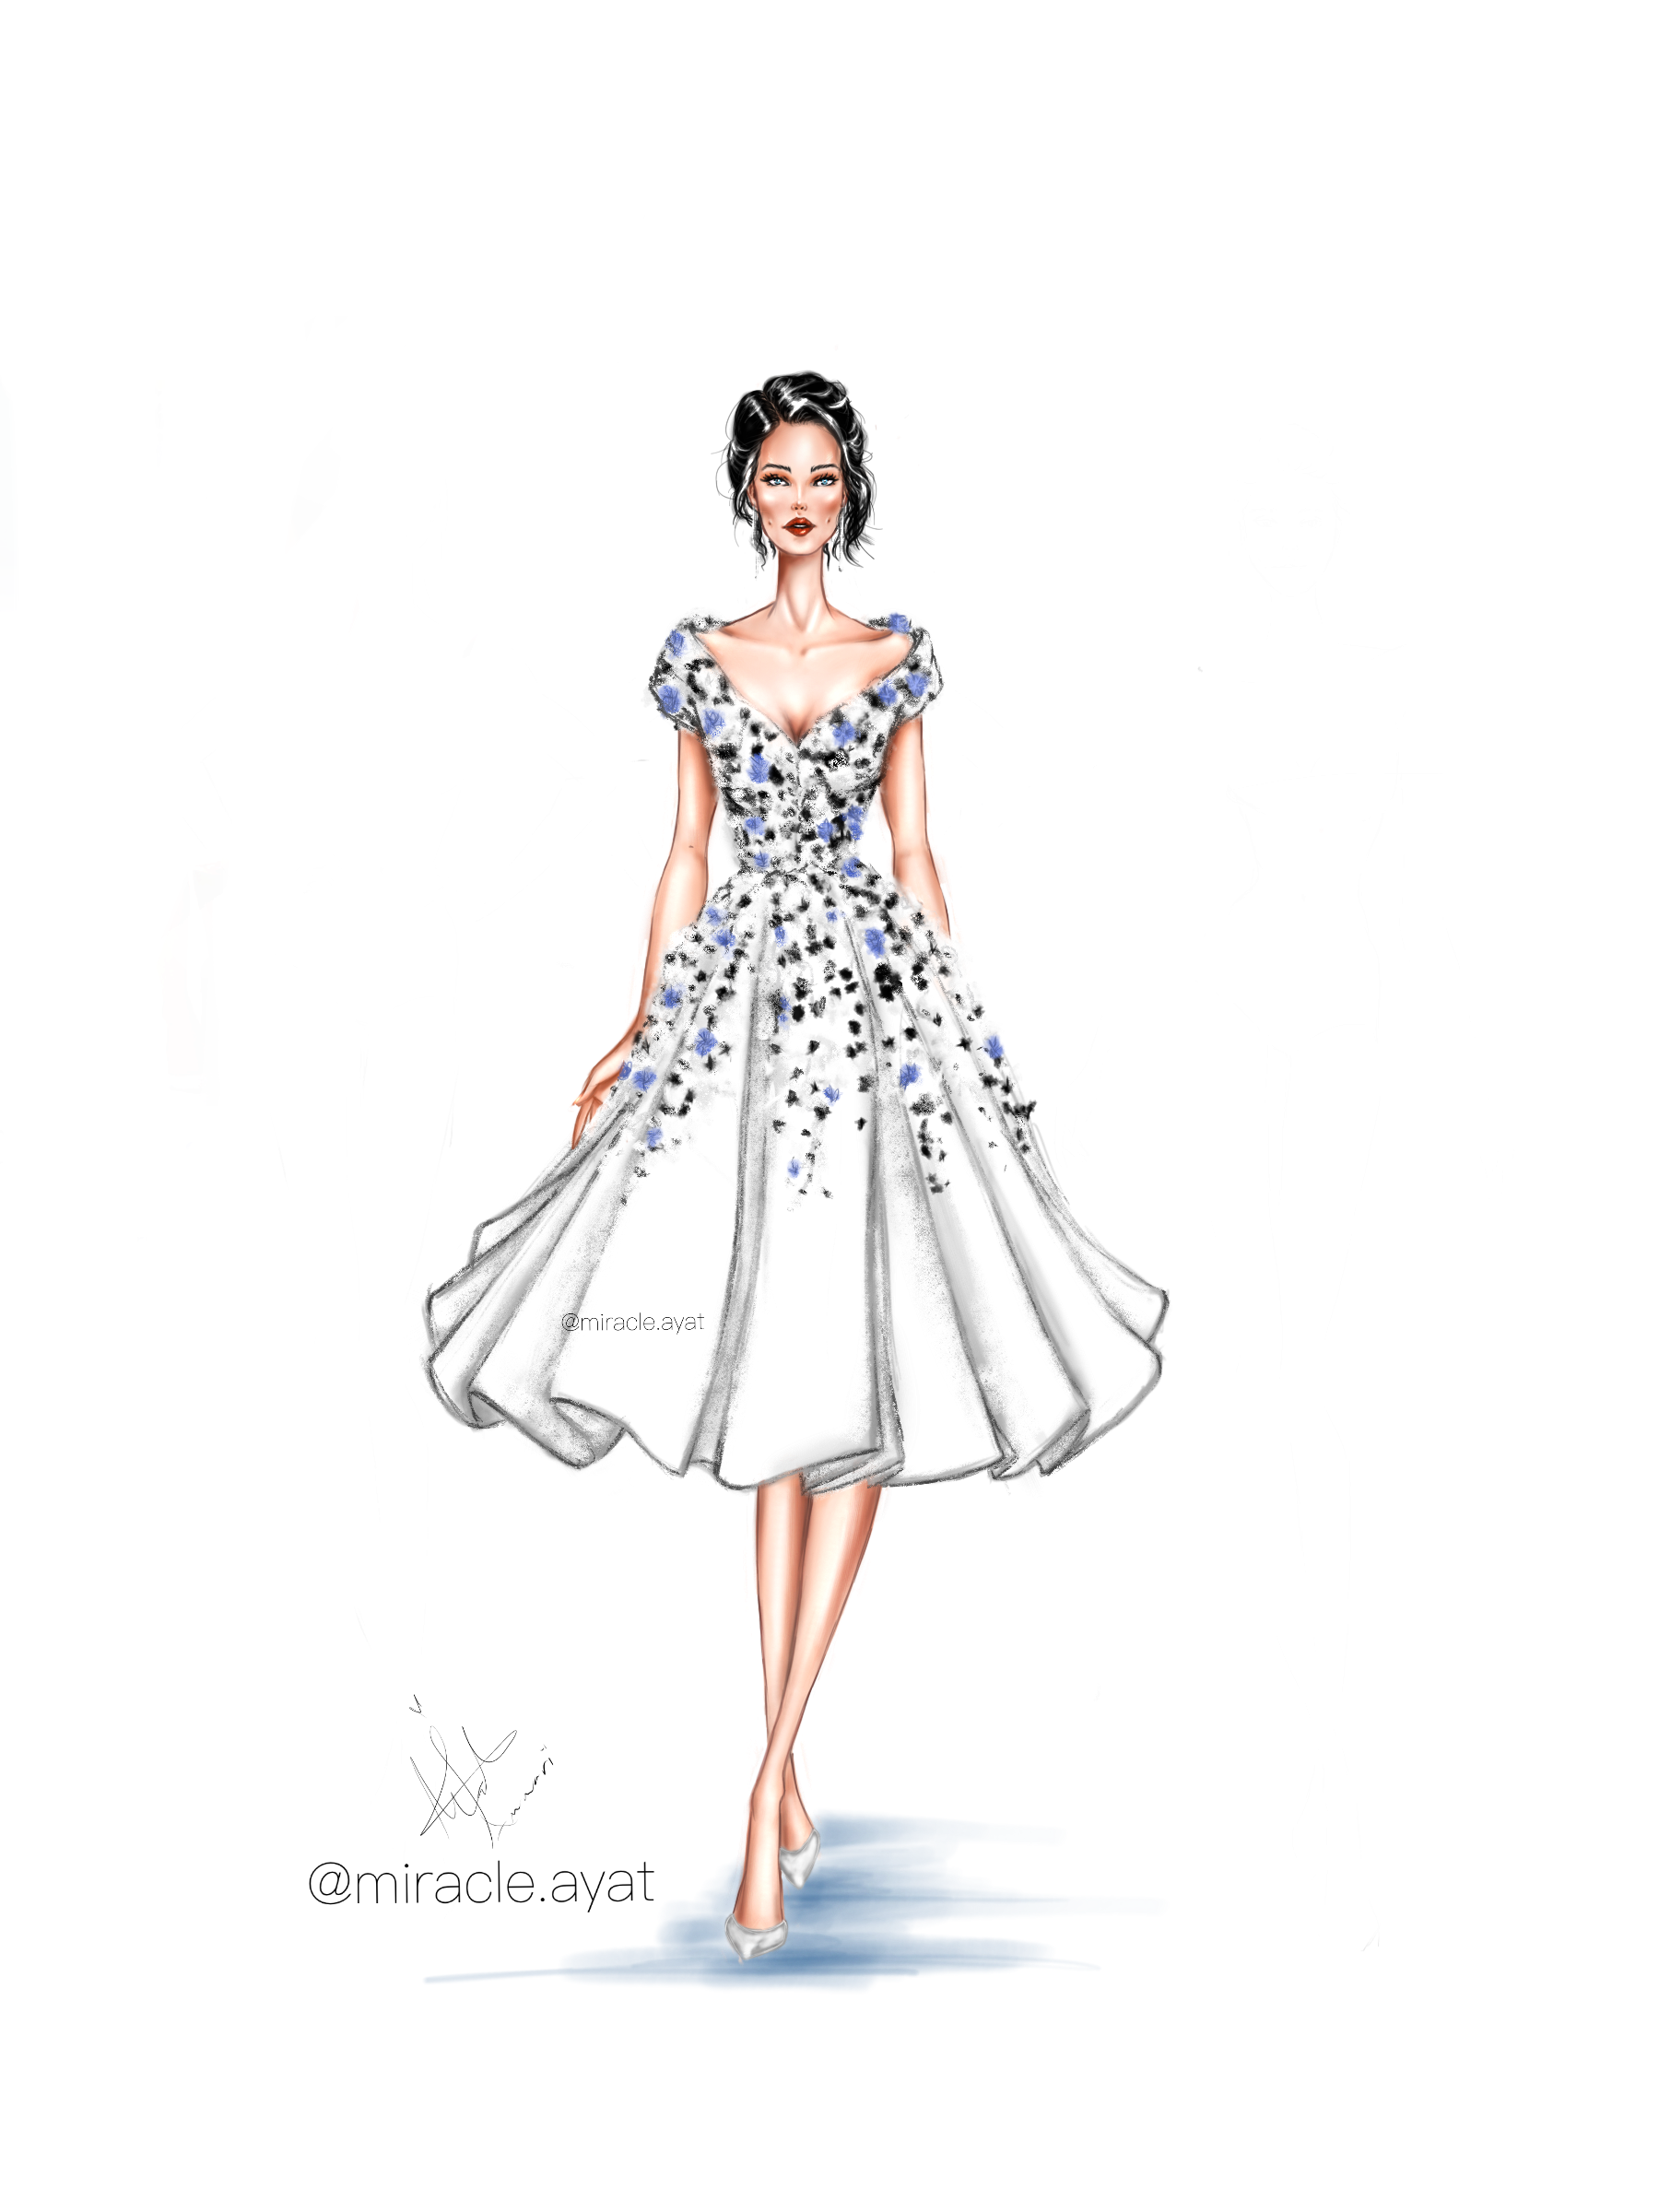 By Miracle Ayat Illustration For Ralphandrusso 2015 Animacao Desenhos